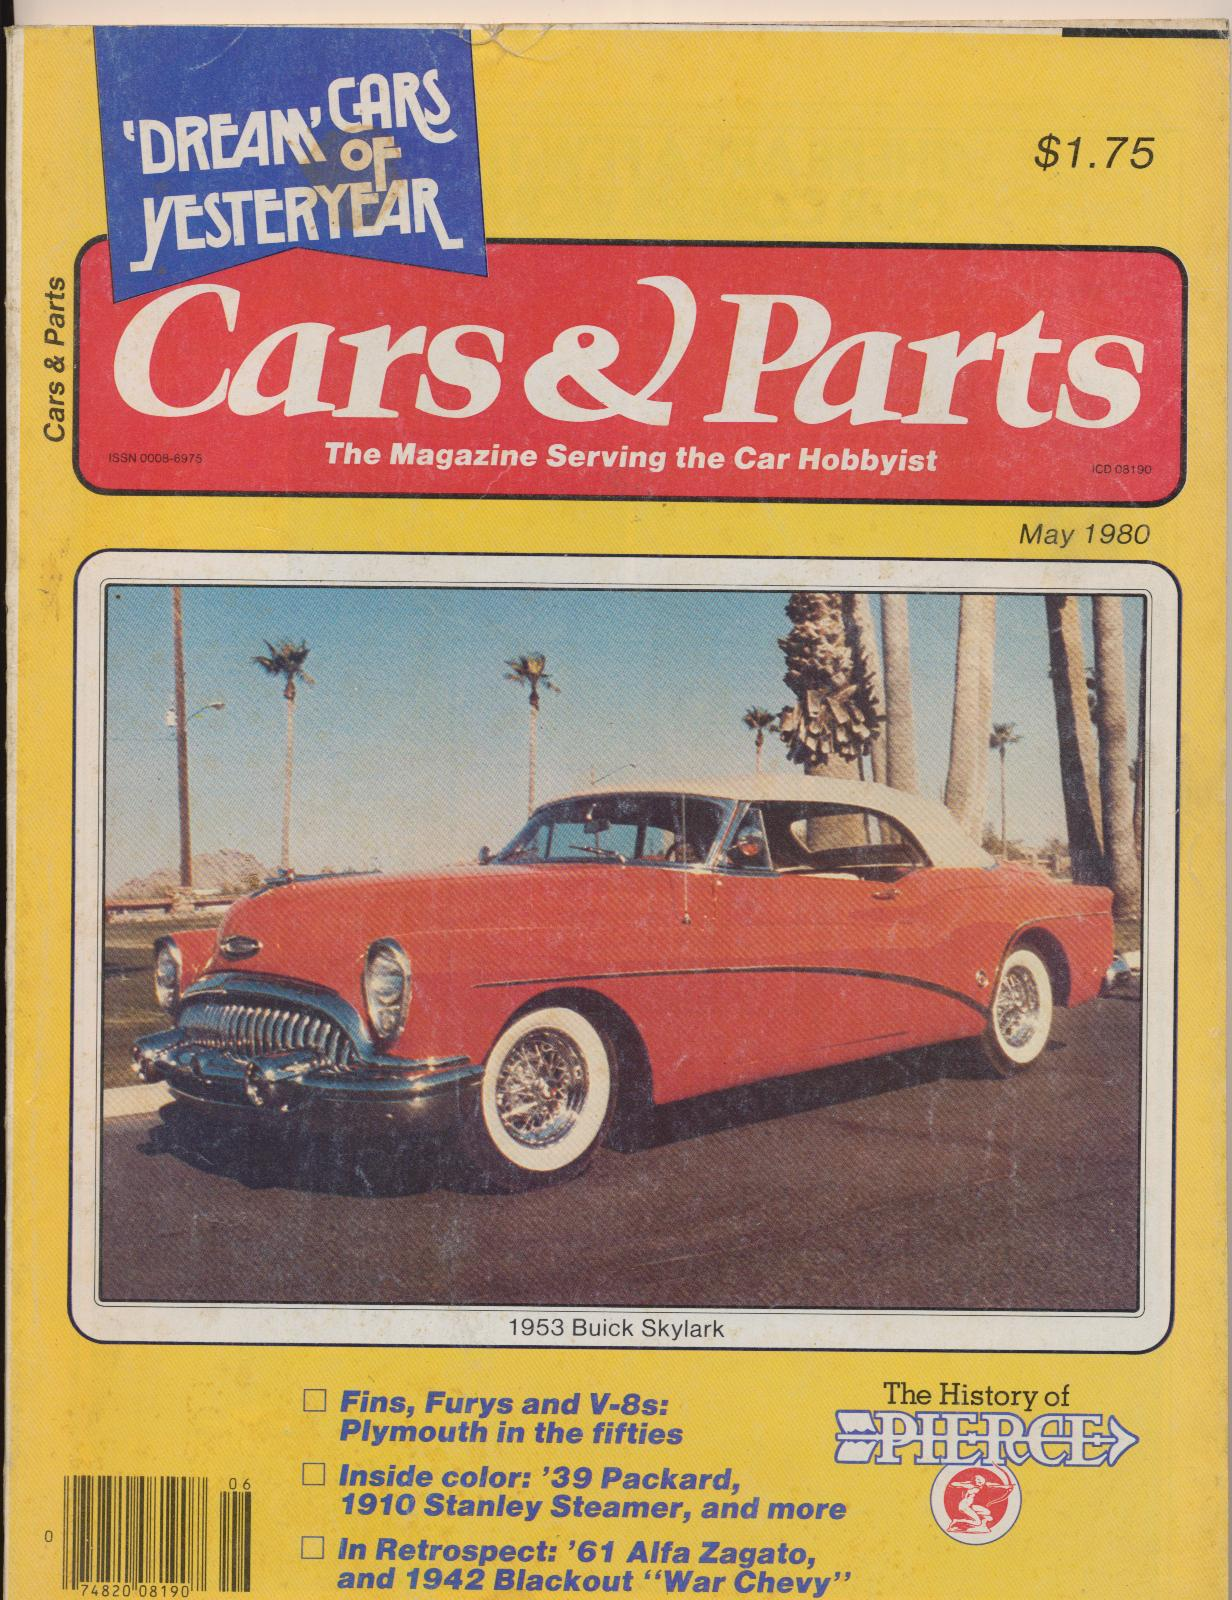 May 1980 Cars & Parts - Dream Experimental Cars - 50s Styling